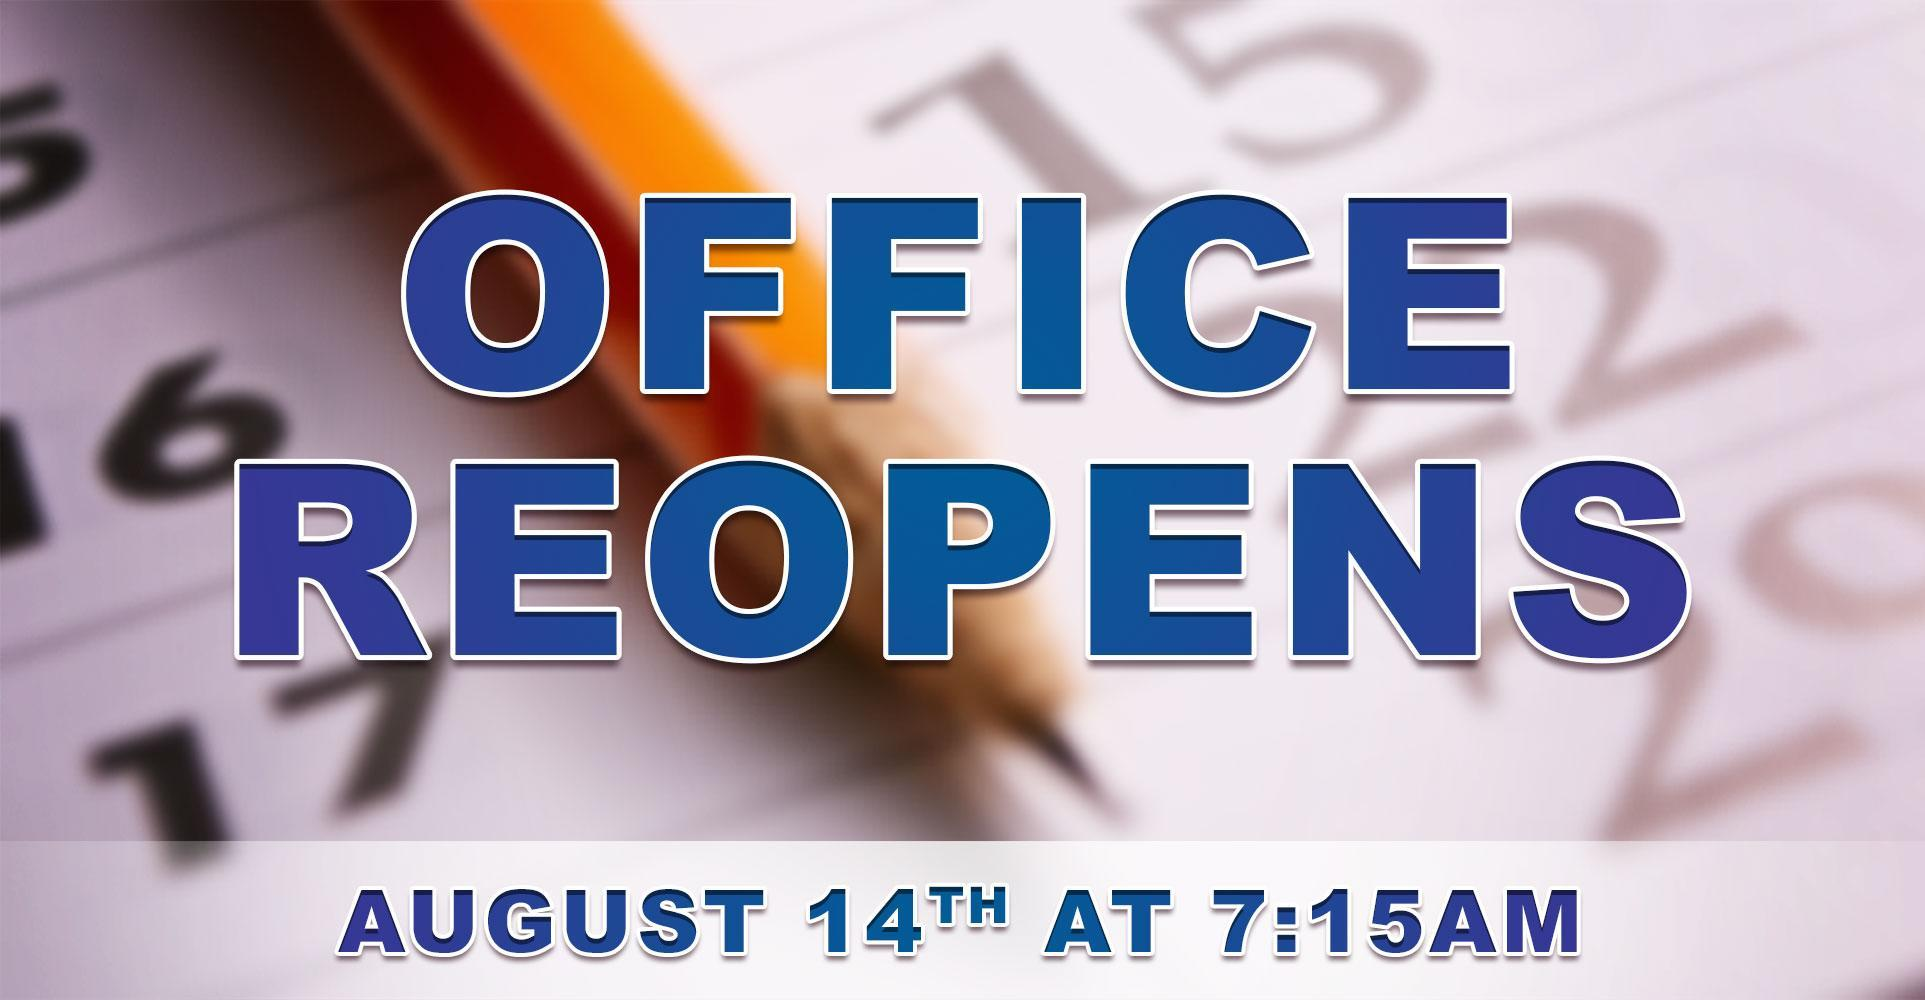 Fairmont Elementary Office Reopens on August 14 at 7:15 AM